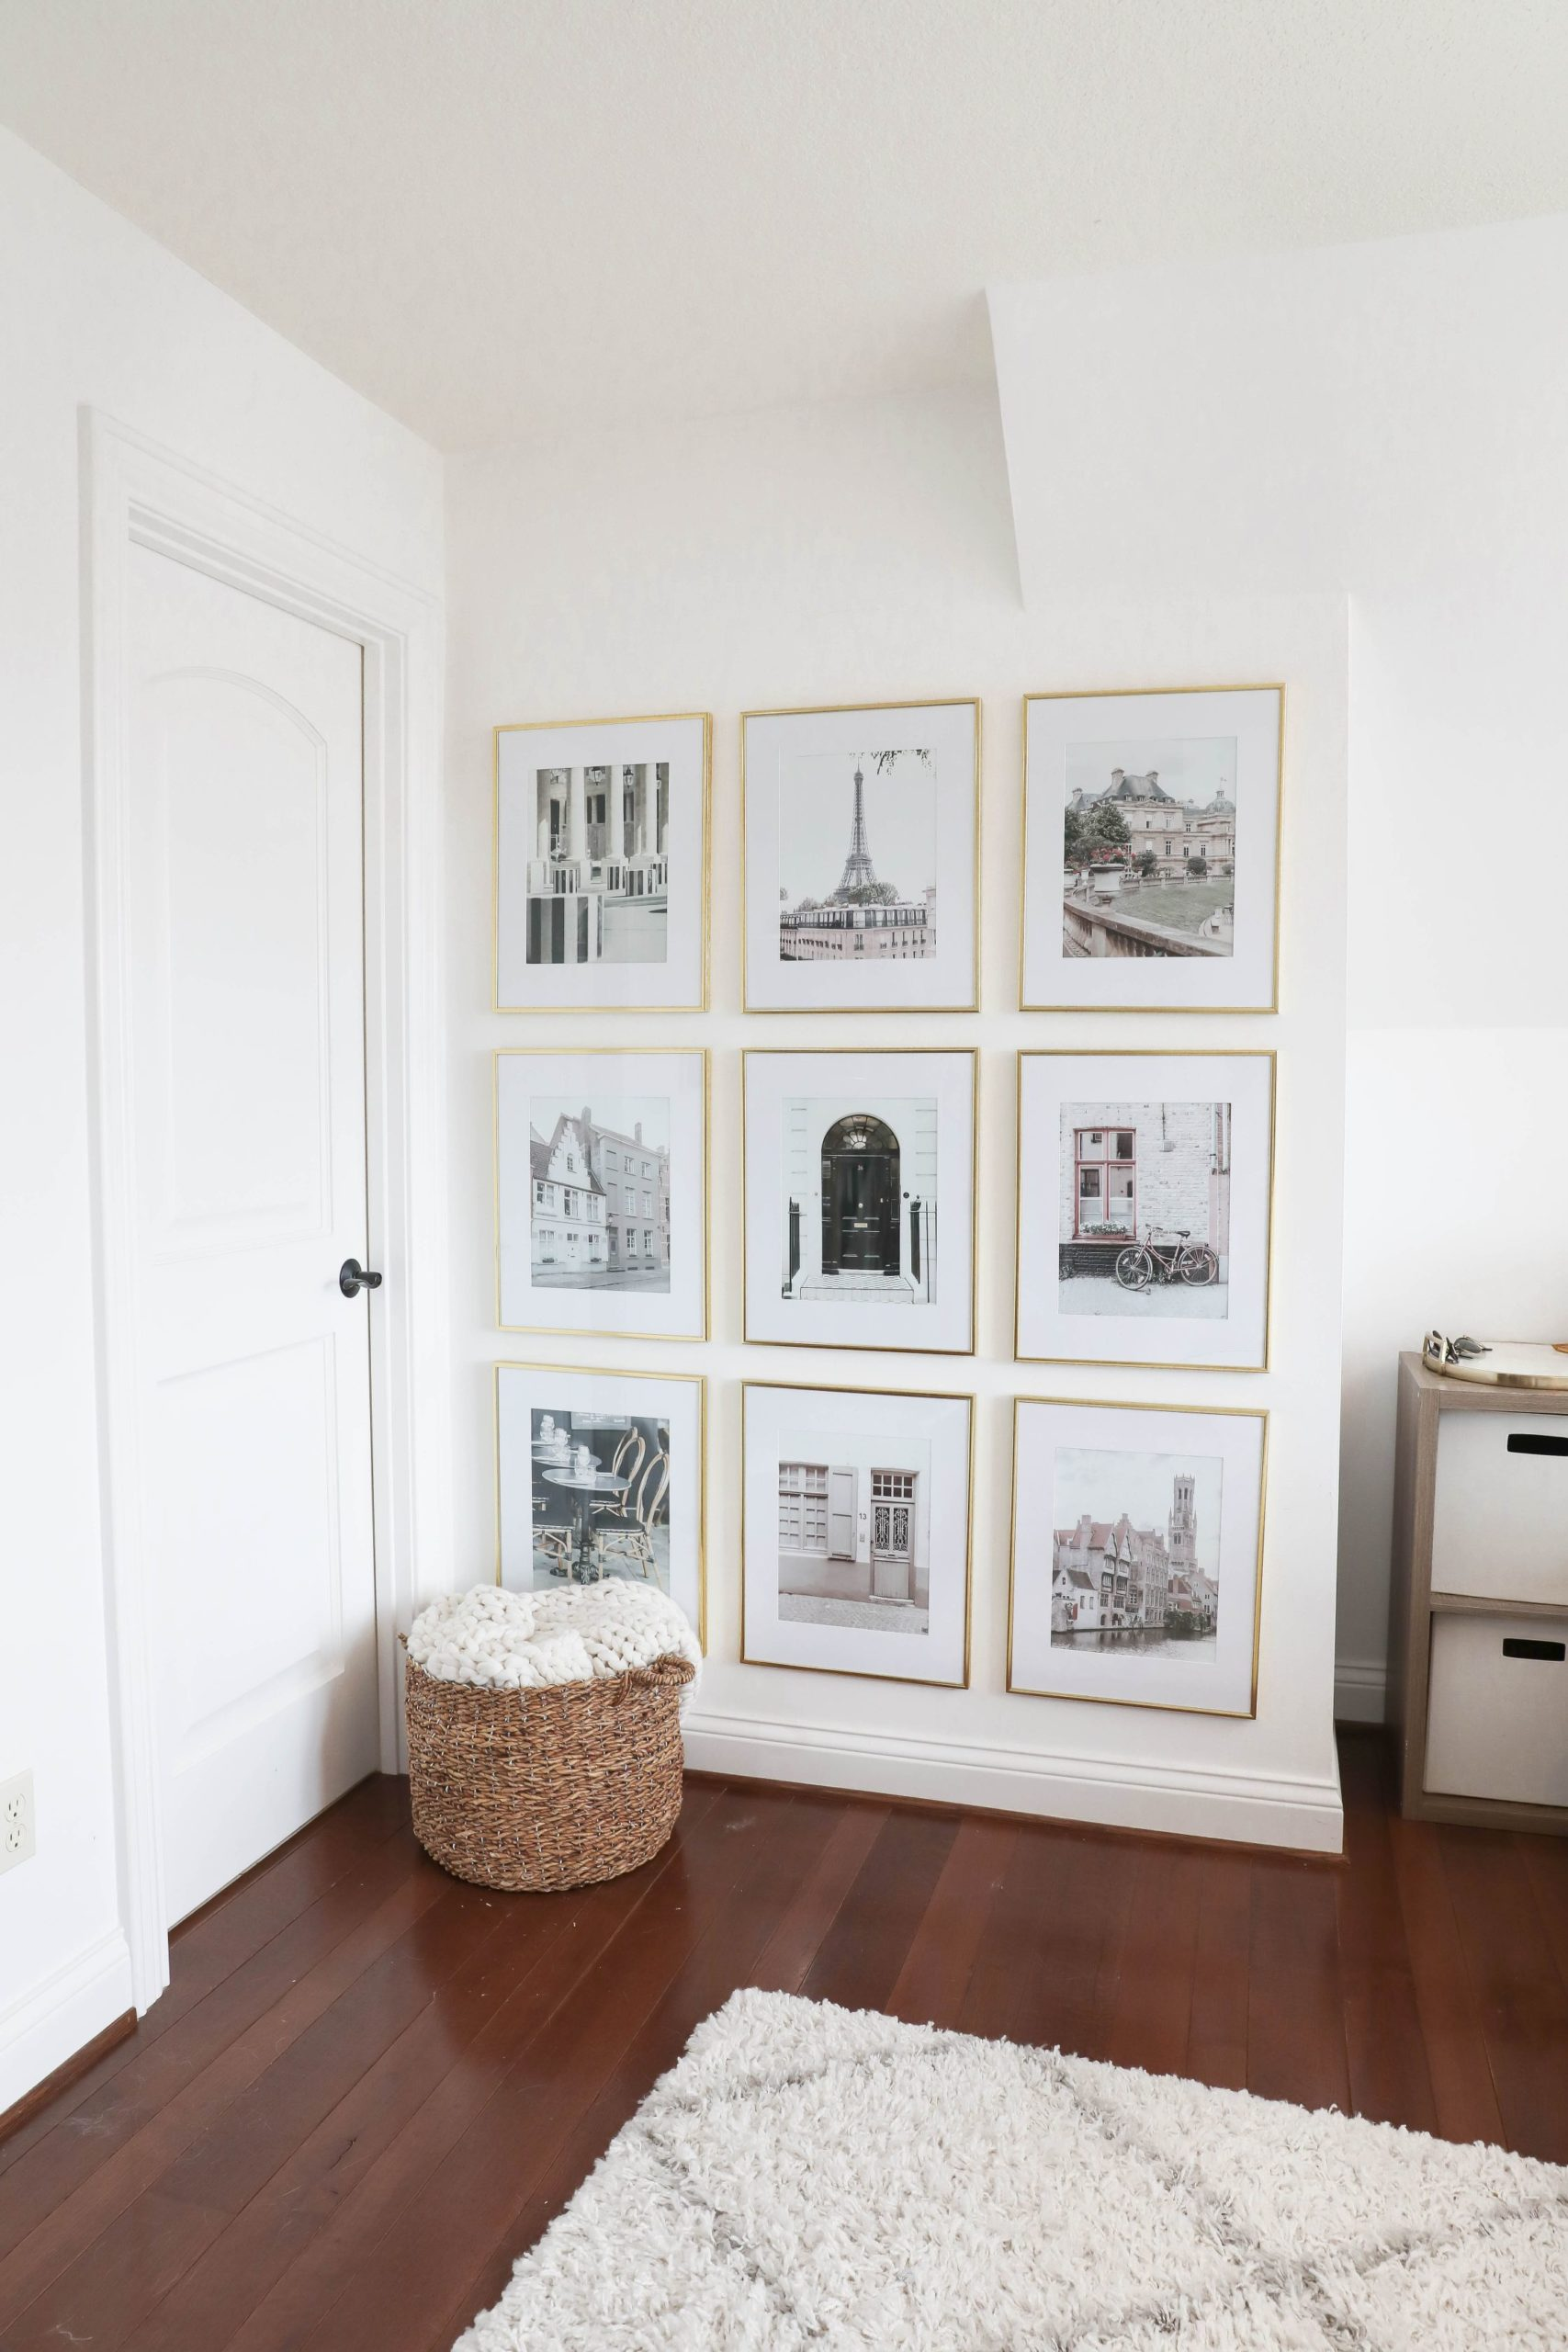 How to create the perfect gallery wall! Process from start to finish! On the blog daily dose of charm by Lauren Lindmark